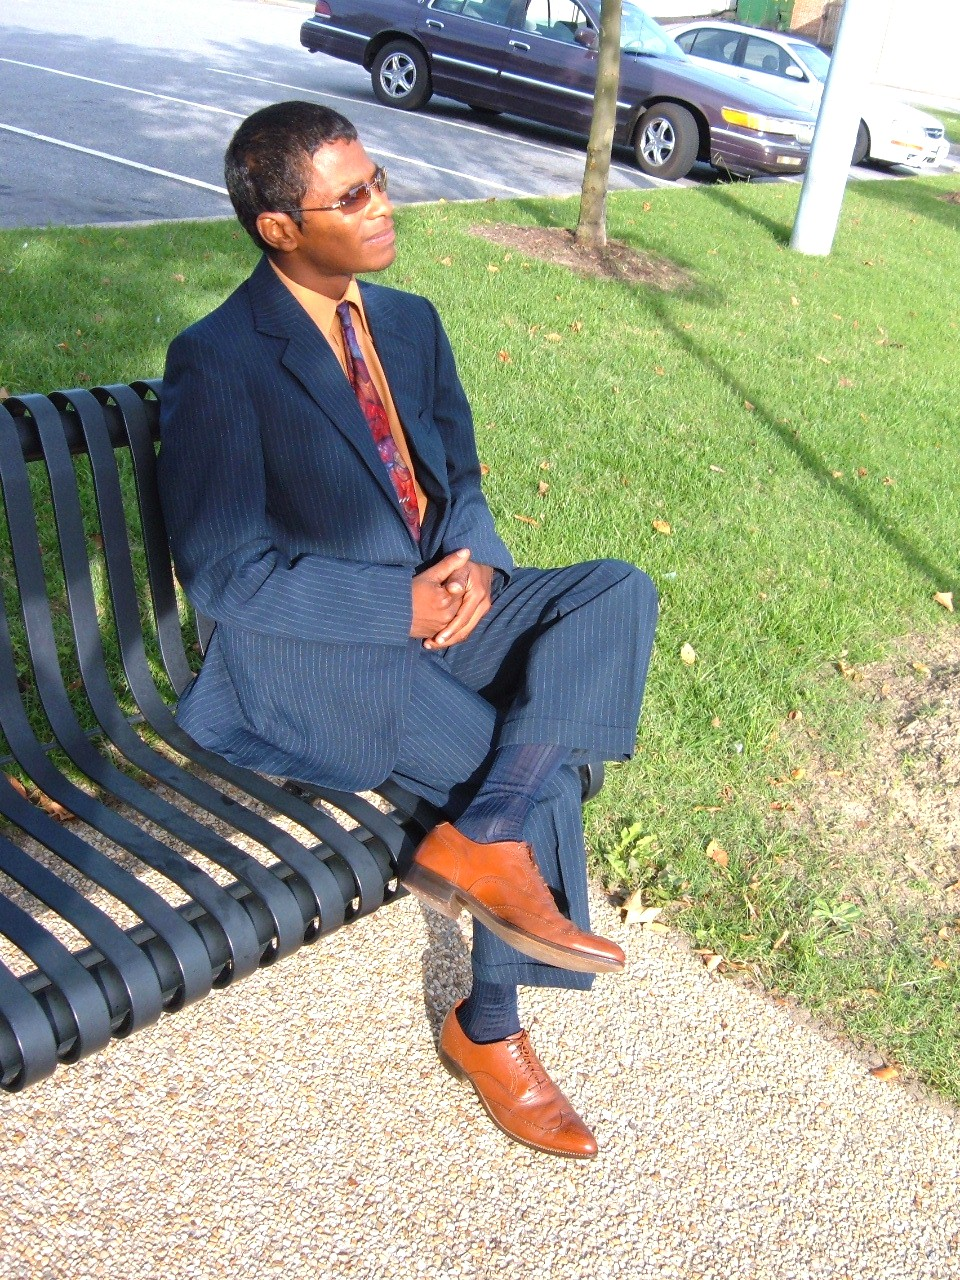 Here J Models Navy Pinstripe Suit Tnt Socks And Vintage Tan John Hardy Wingtip Shoes